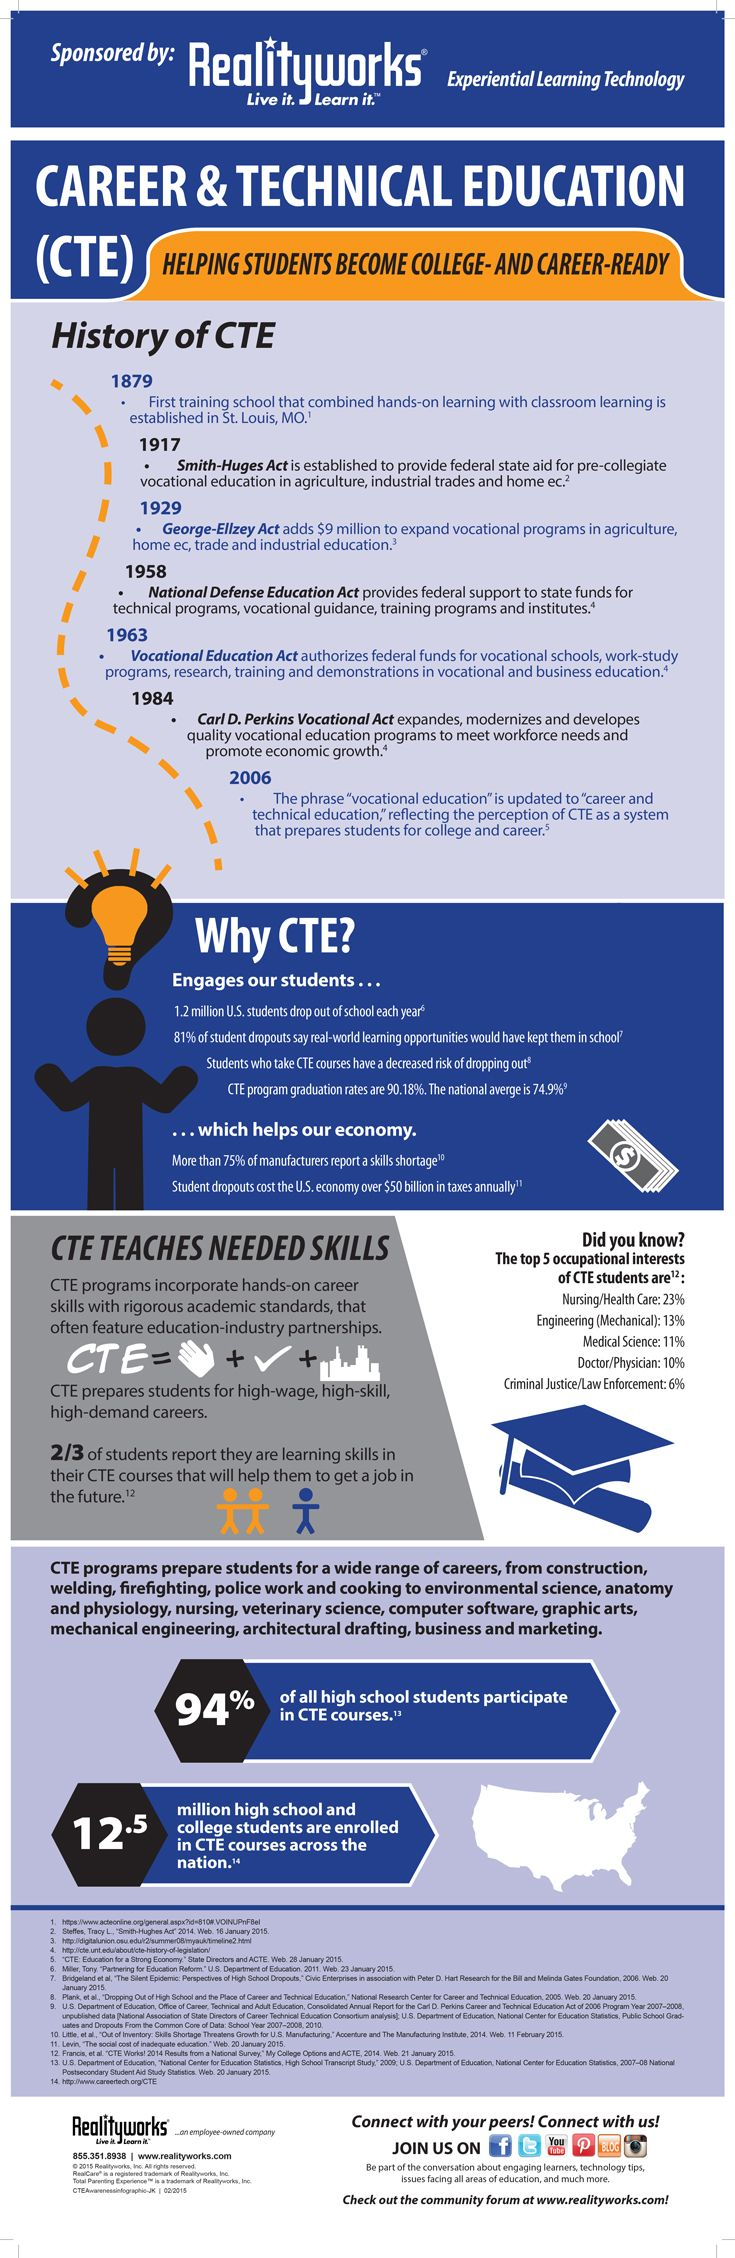 Learn the history of CTE and why career and technical education is so vital for the US economy in this free infographic - just in time for CTE Month 2015!   From Realityworks.com